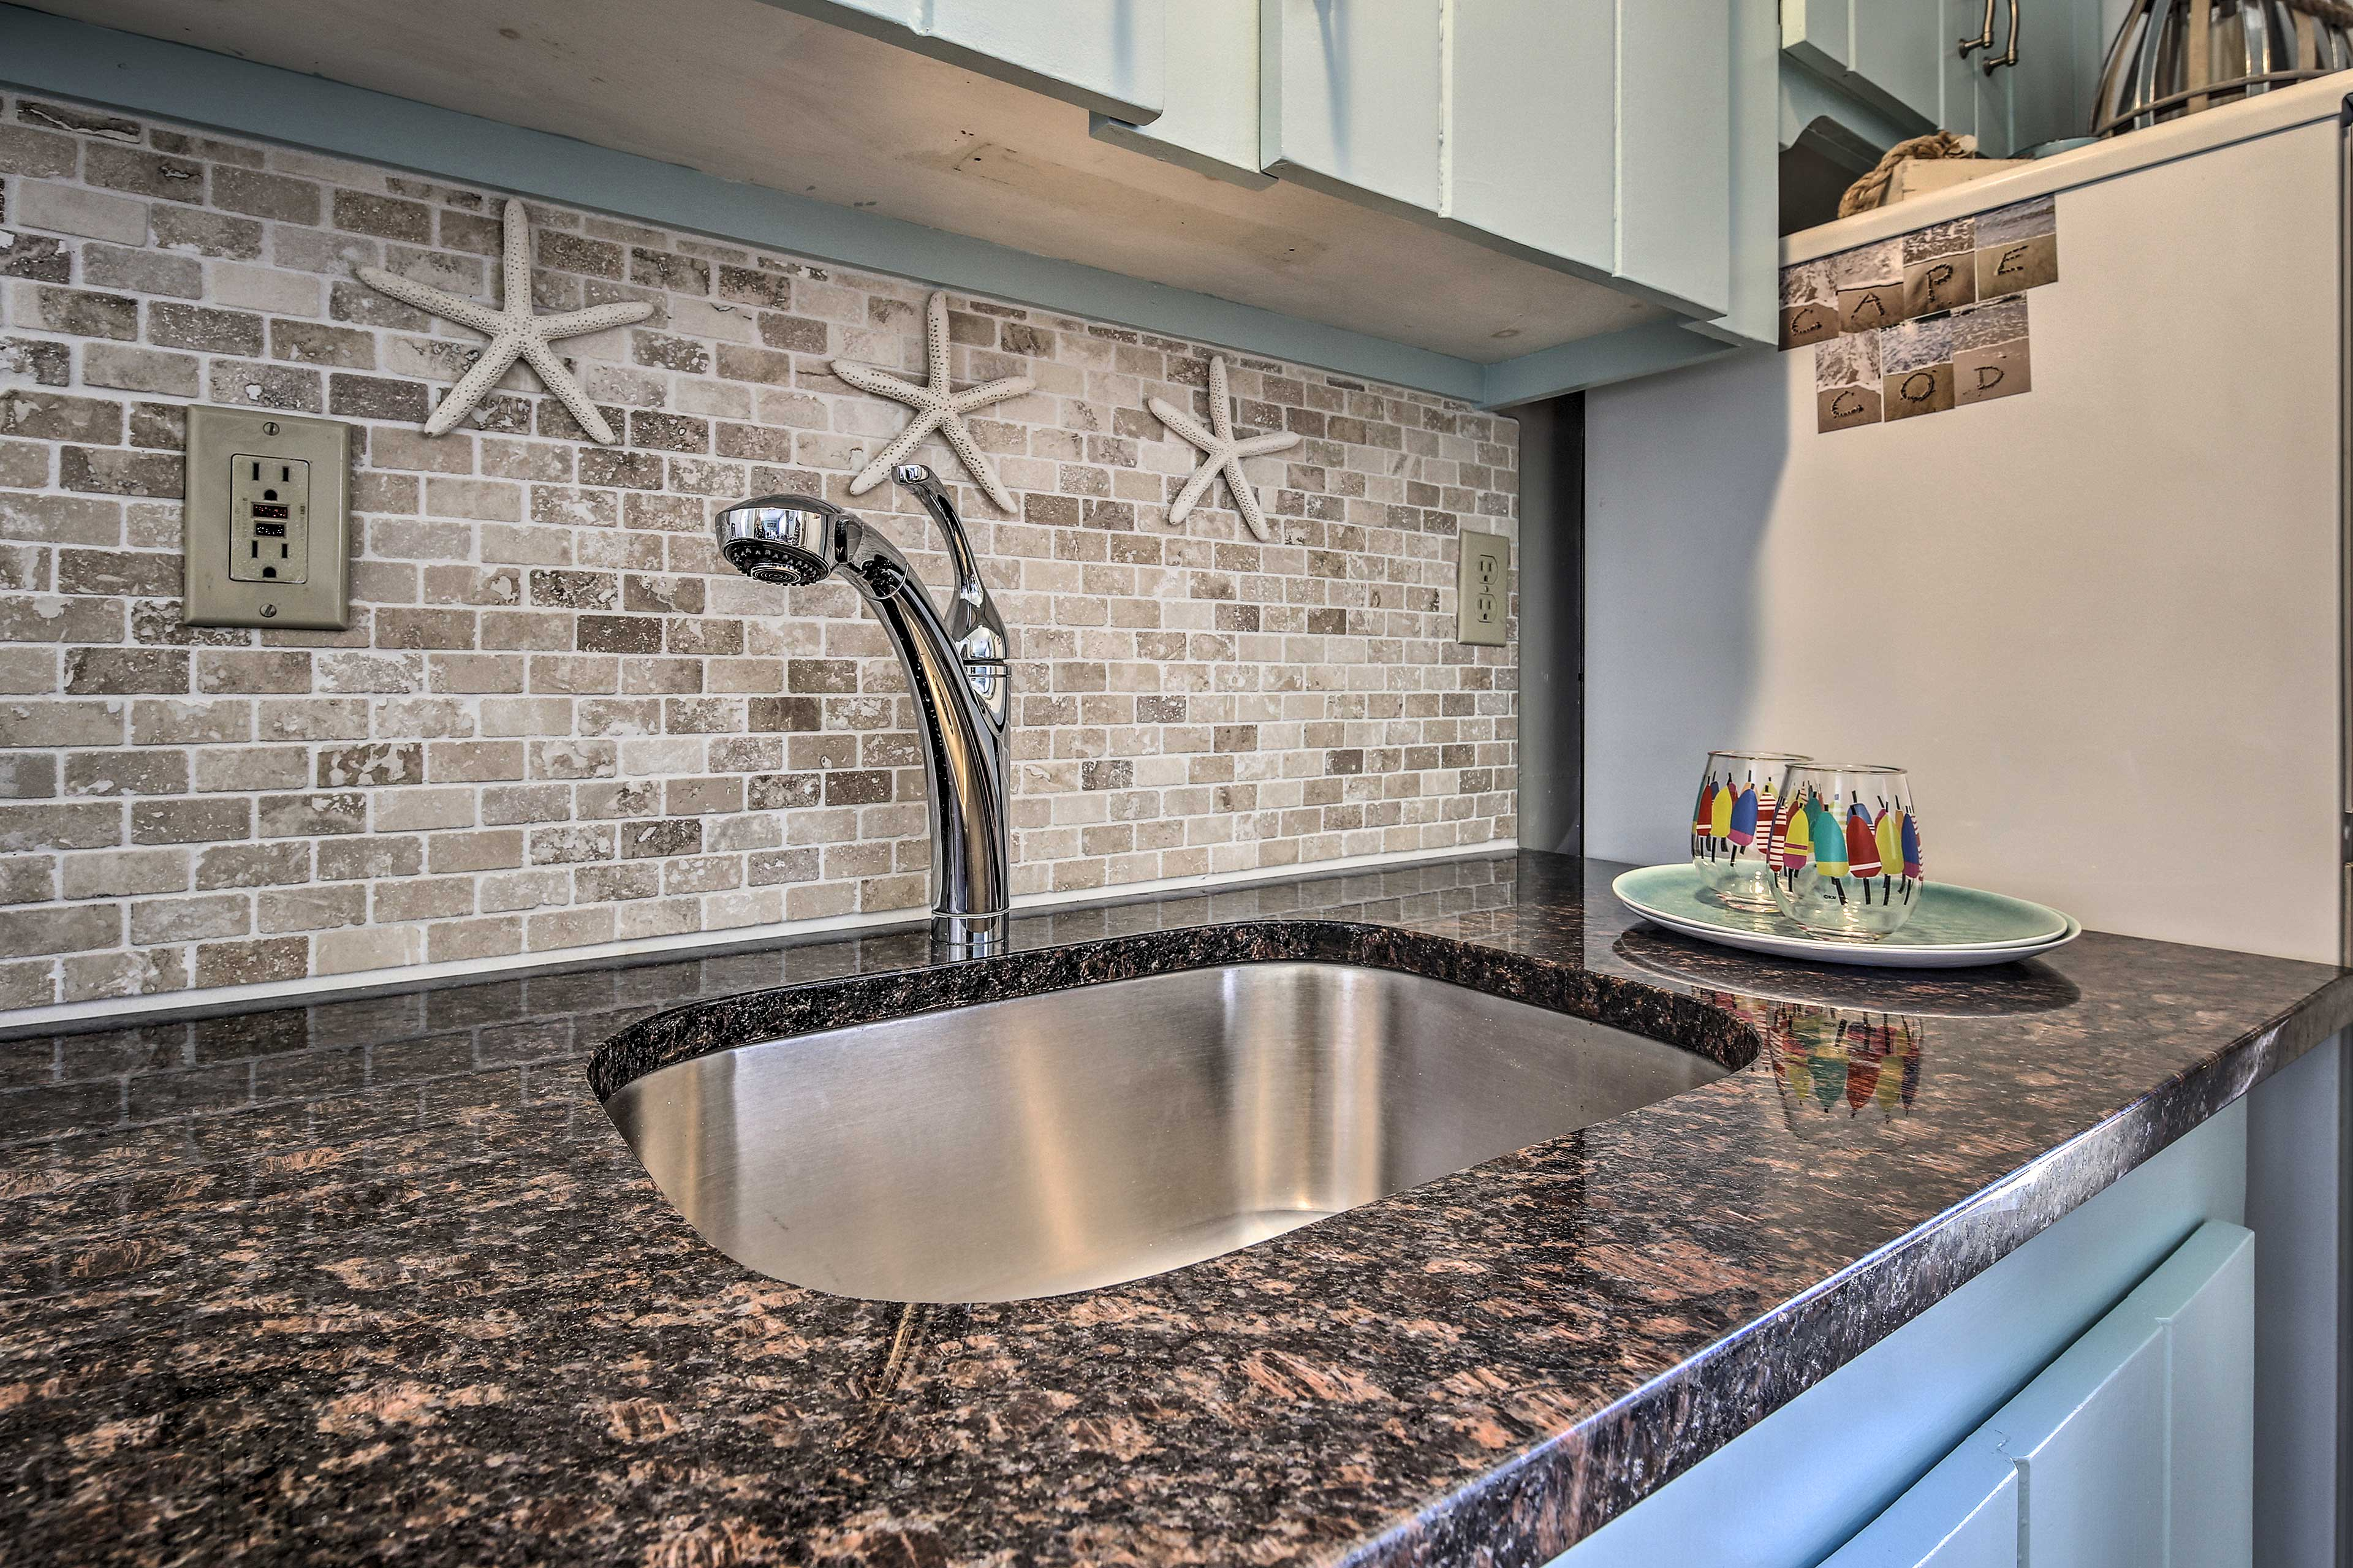 The granite countertops and tile backsplash is a gorgeous touch!